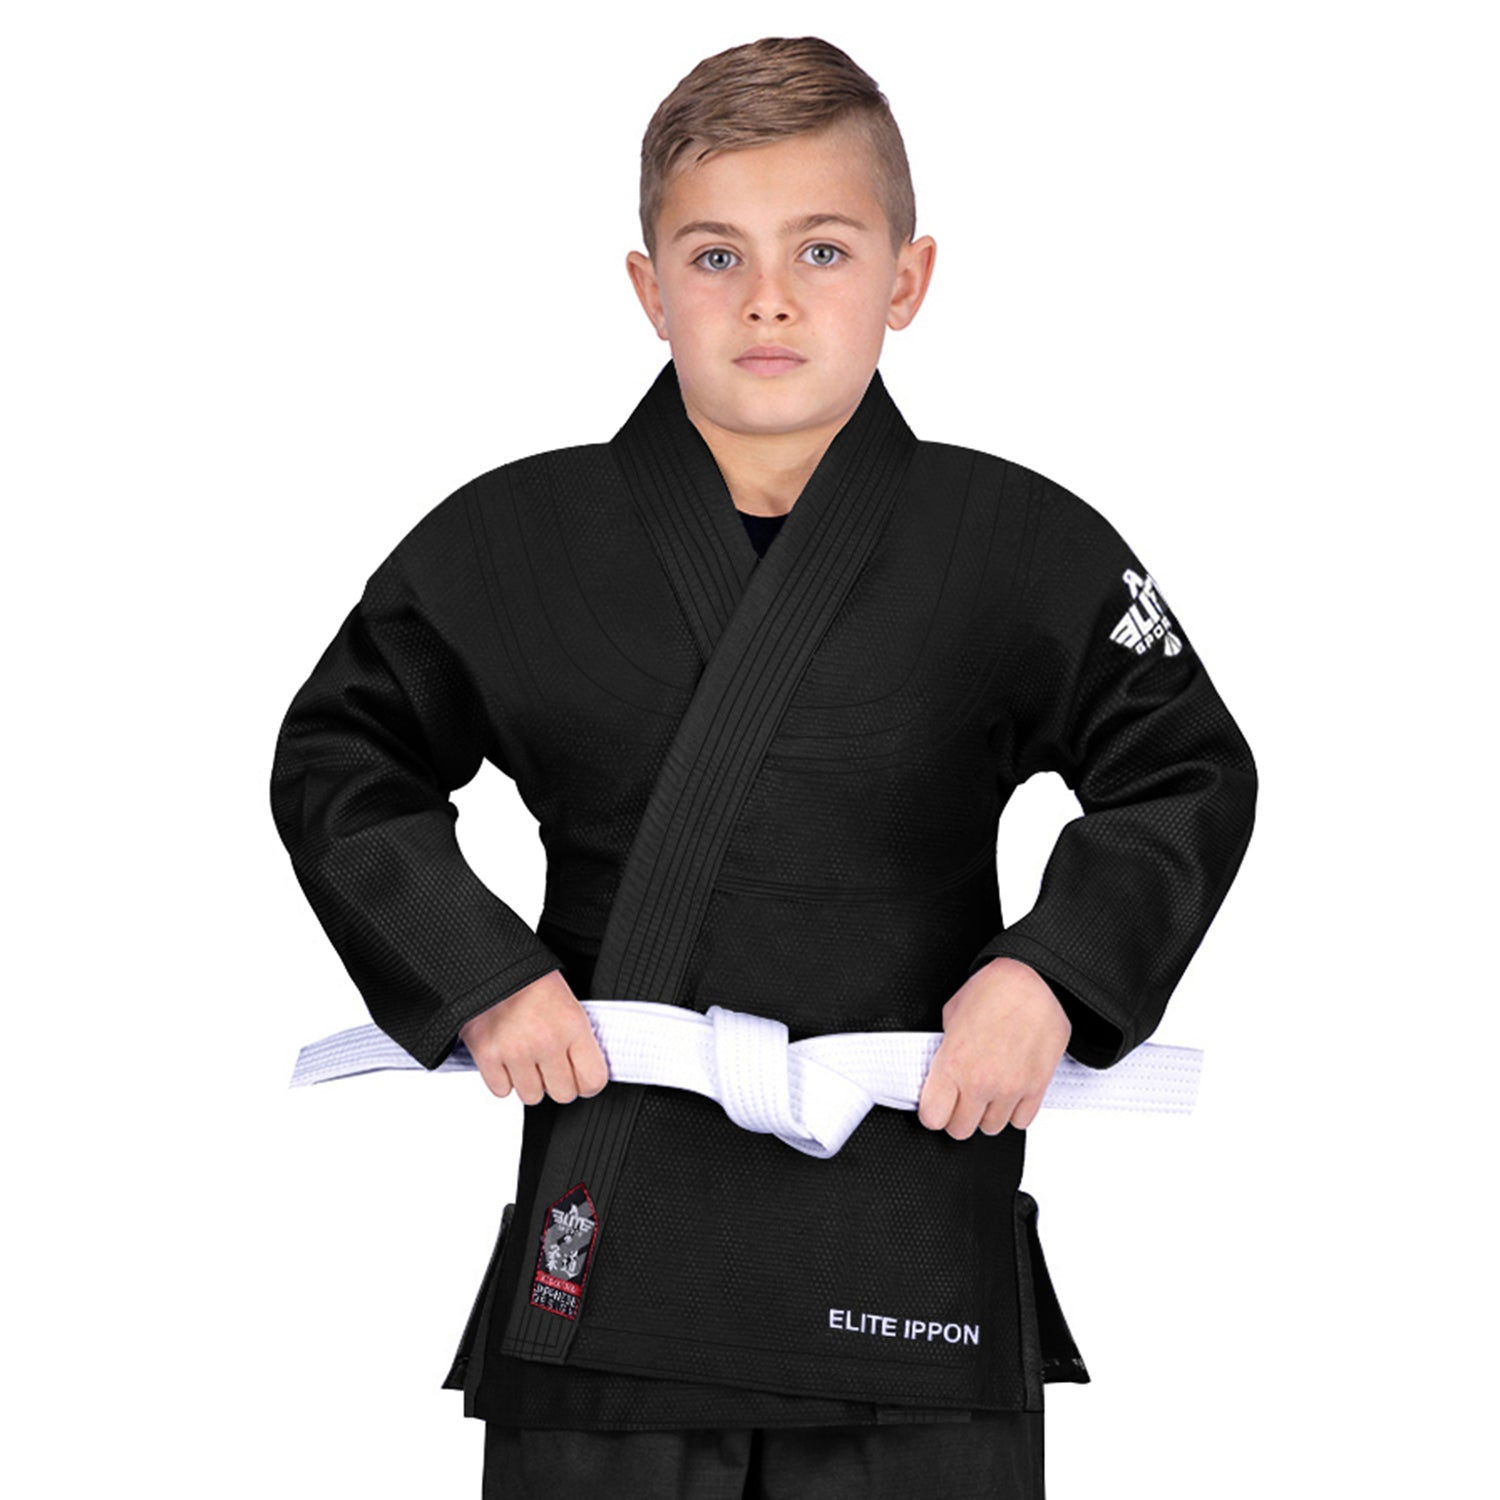 Elite Sports Ultra Light Preshrunk Black Kids Judo Gi